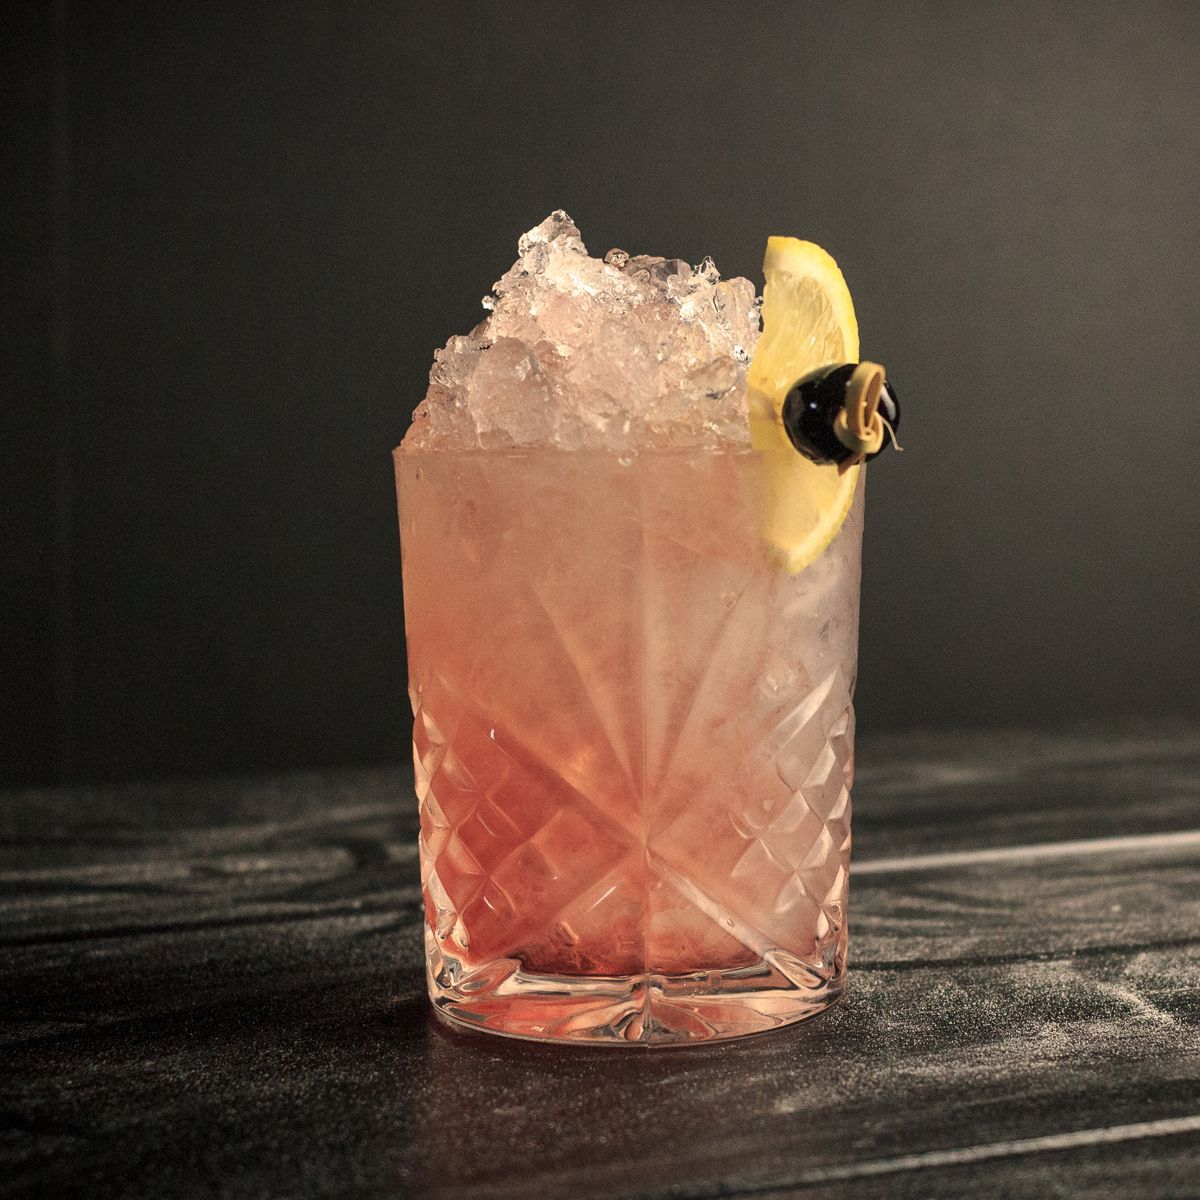 A classic tiki cocktail, the Western Sour originated at Crane's Kon-Tiki, a chain of restaurants found in Sheraton Hotels during the mid-century competing directly with Trader Vic's. This recipe features Rye Whiskey, fresh grapefruit, fresh lime, falernum, and simple syrup.